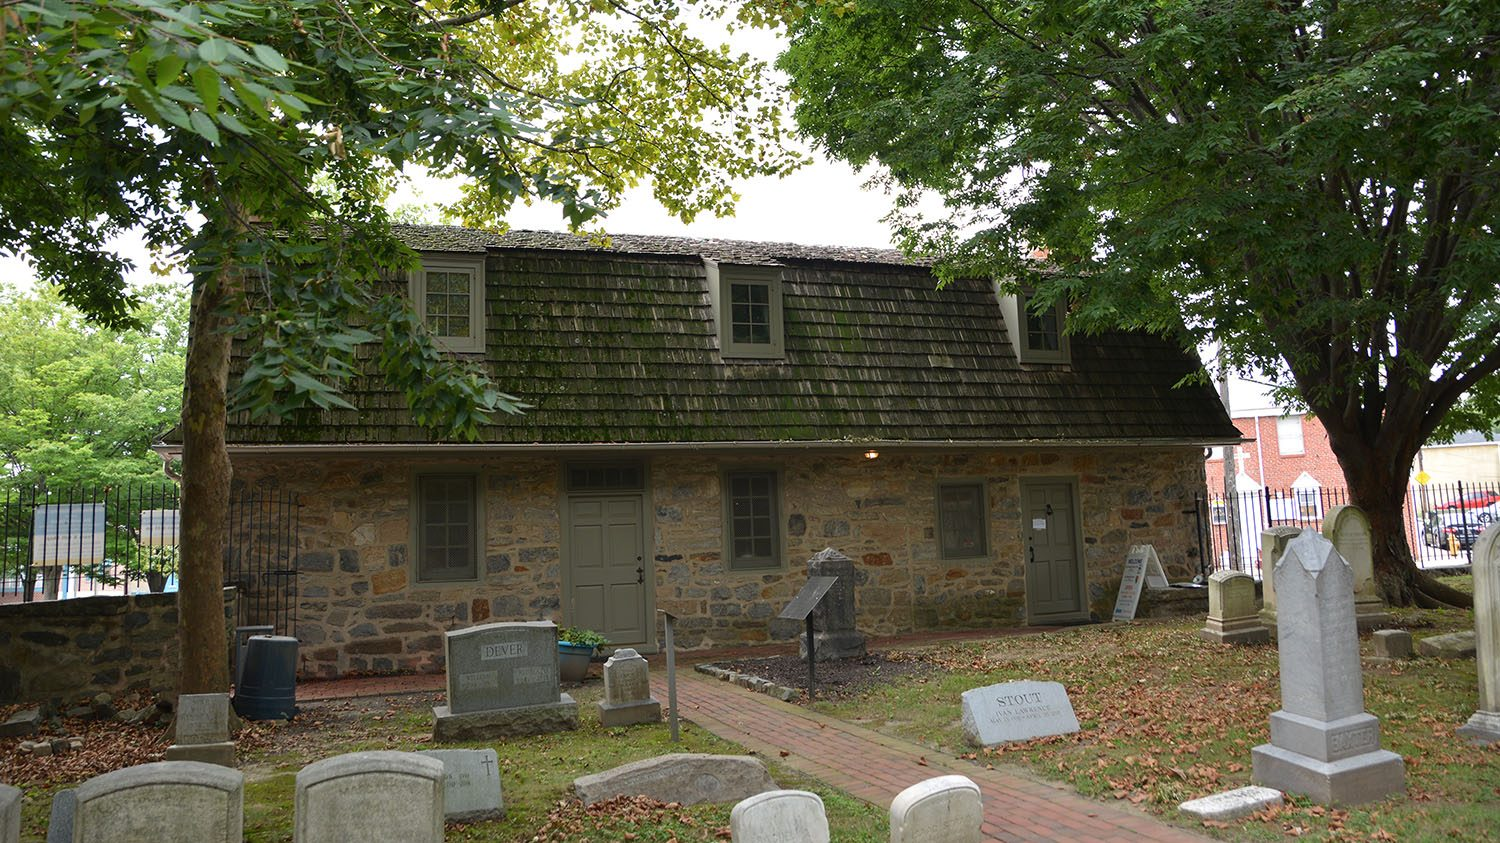 The Hendrickson House at Old Swedes viewed from the graveyard.